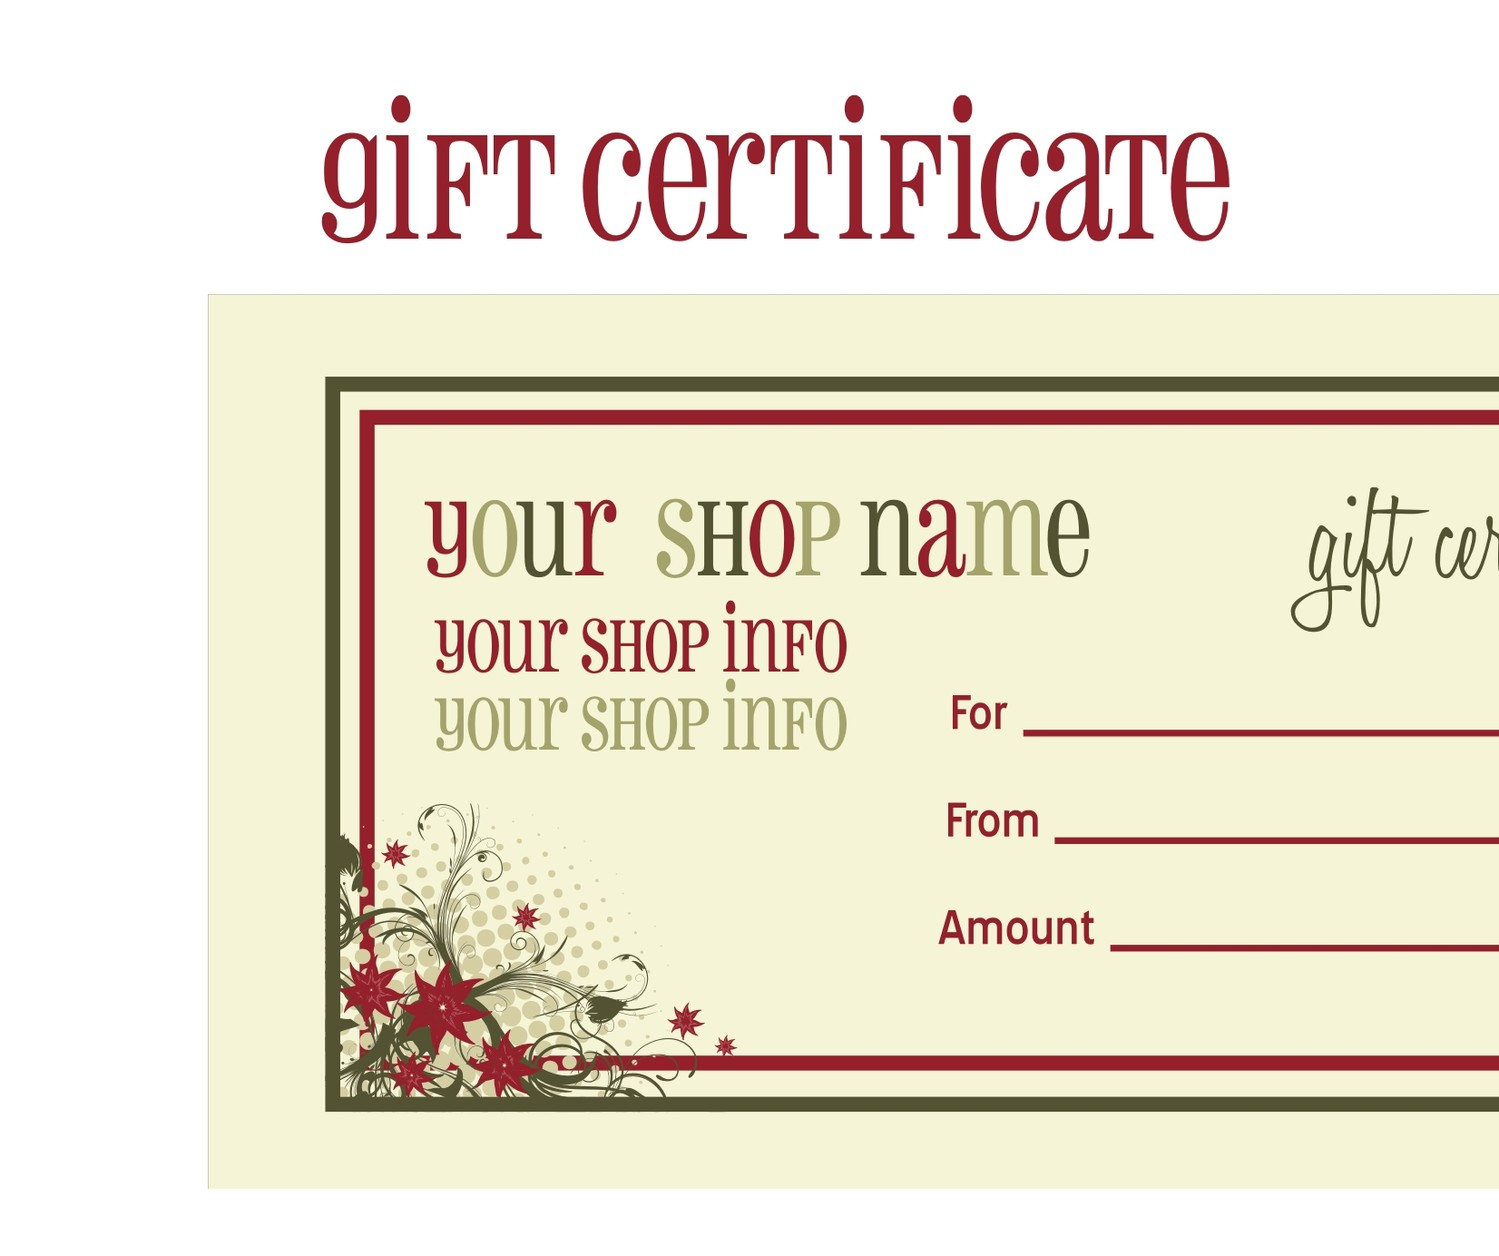 christmas gift certificate template psd resume builder christmas gift certificate template psd christmas gift certificate template 11 word pdf christmas gift certificate template